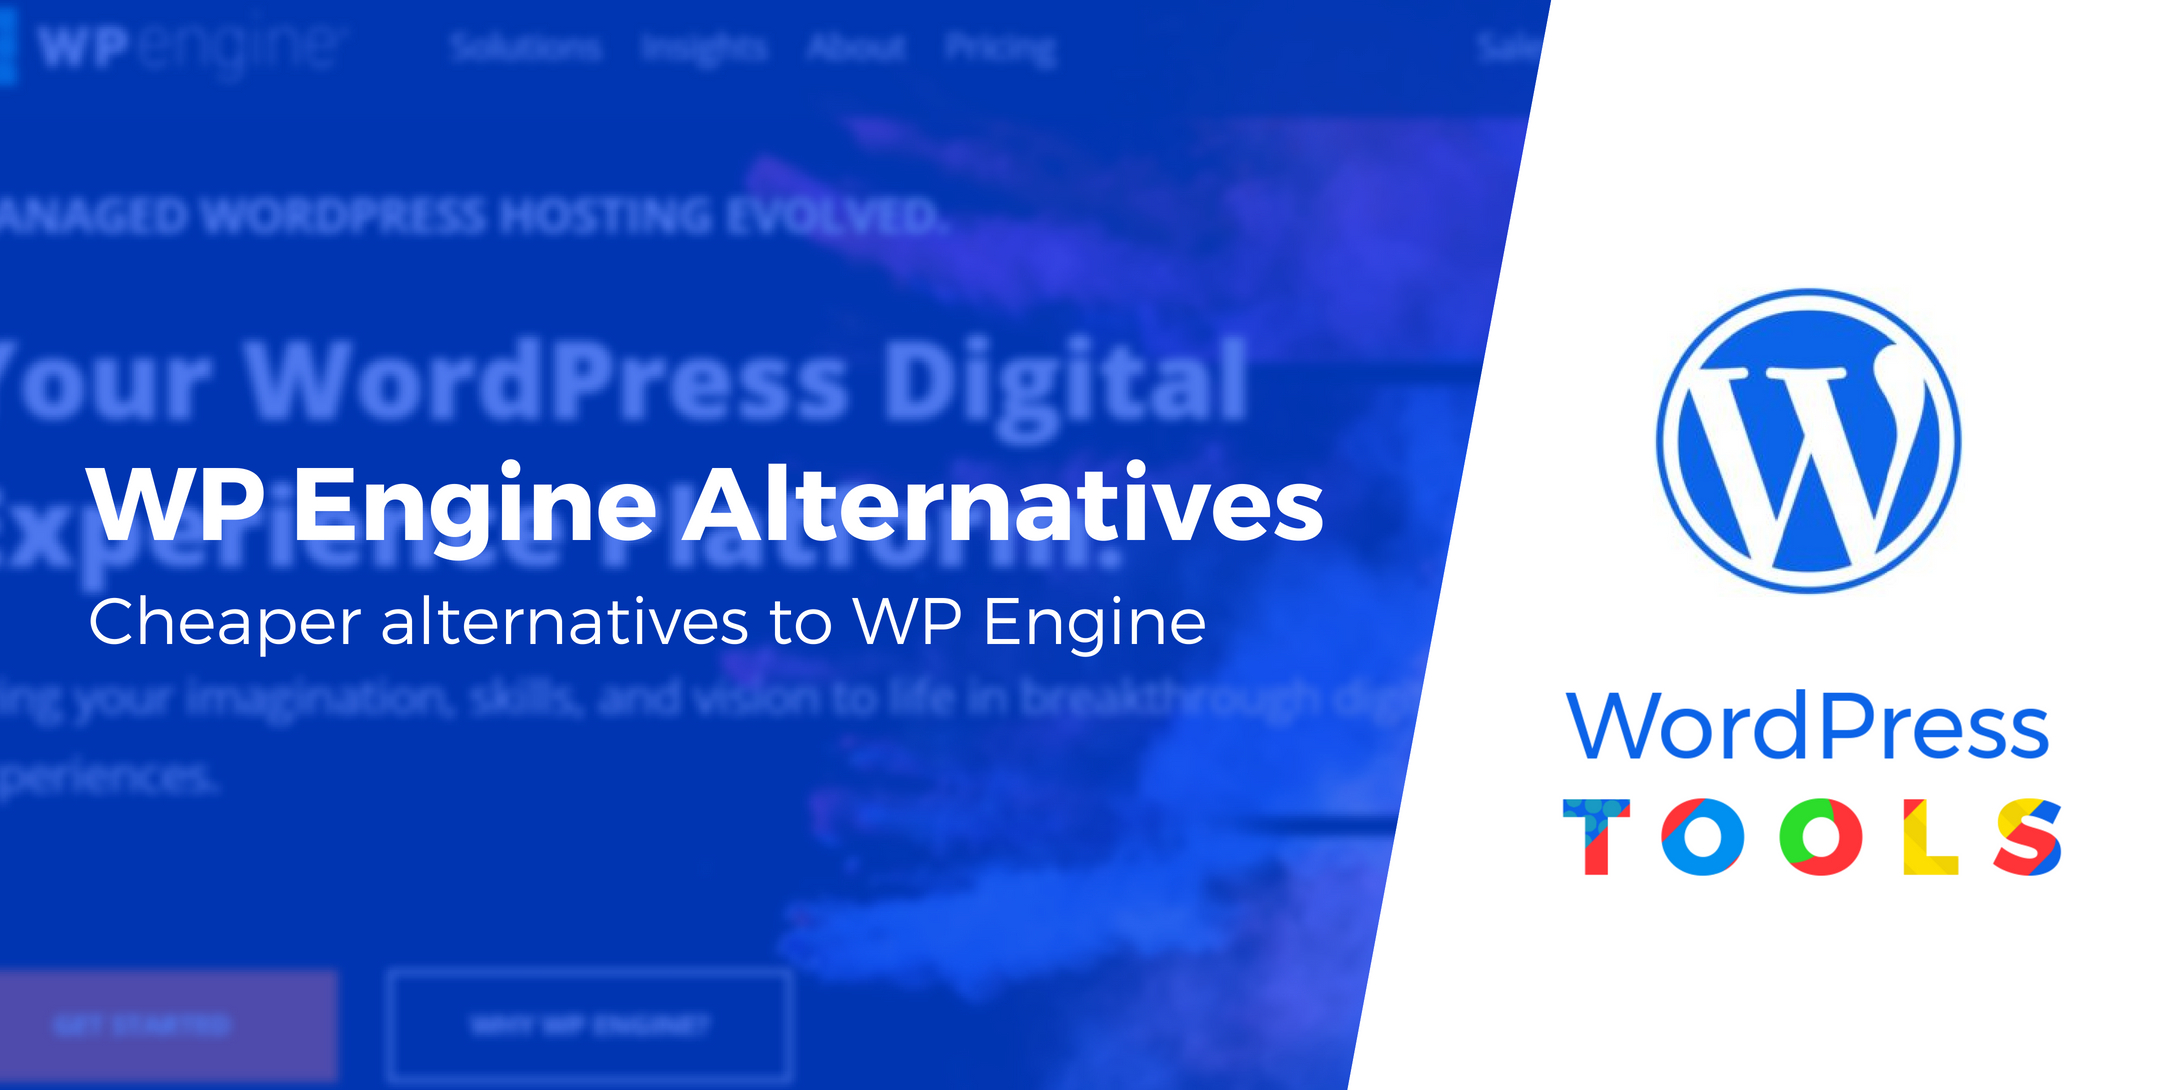 5 Top Cheaper WP Engine Alternatives for 2019